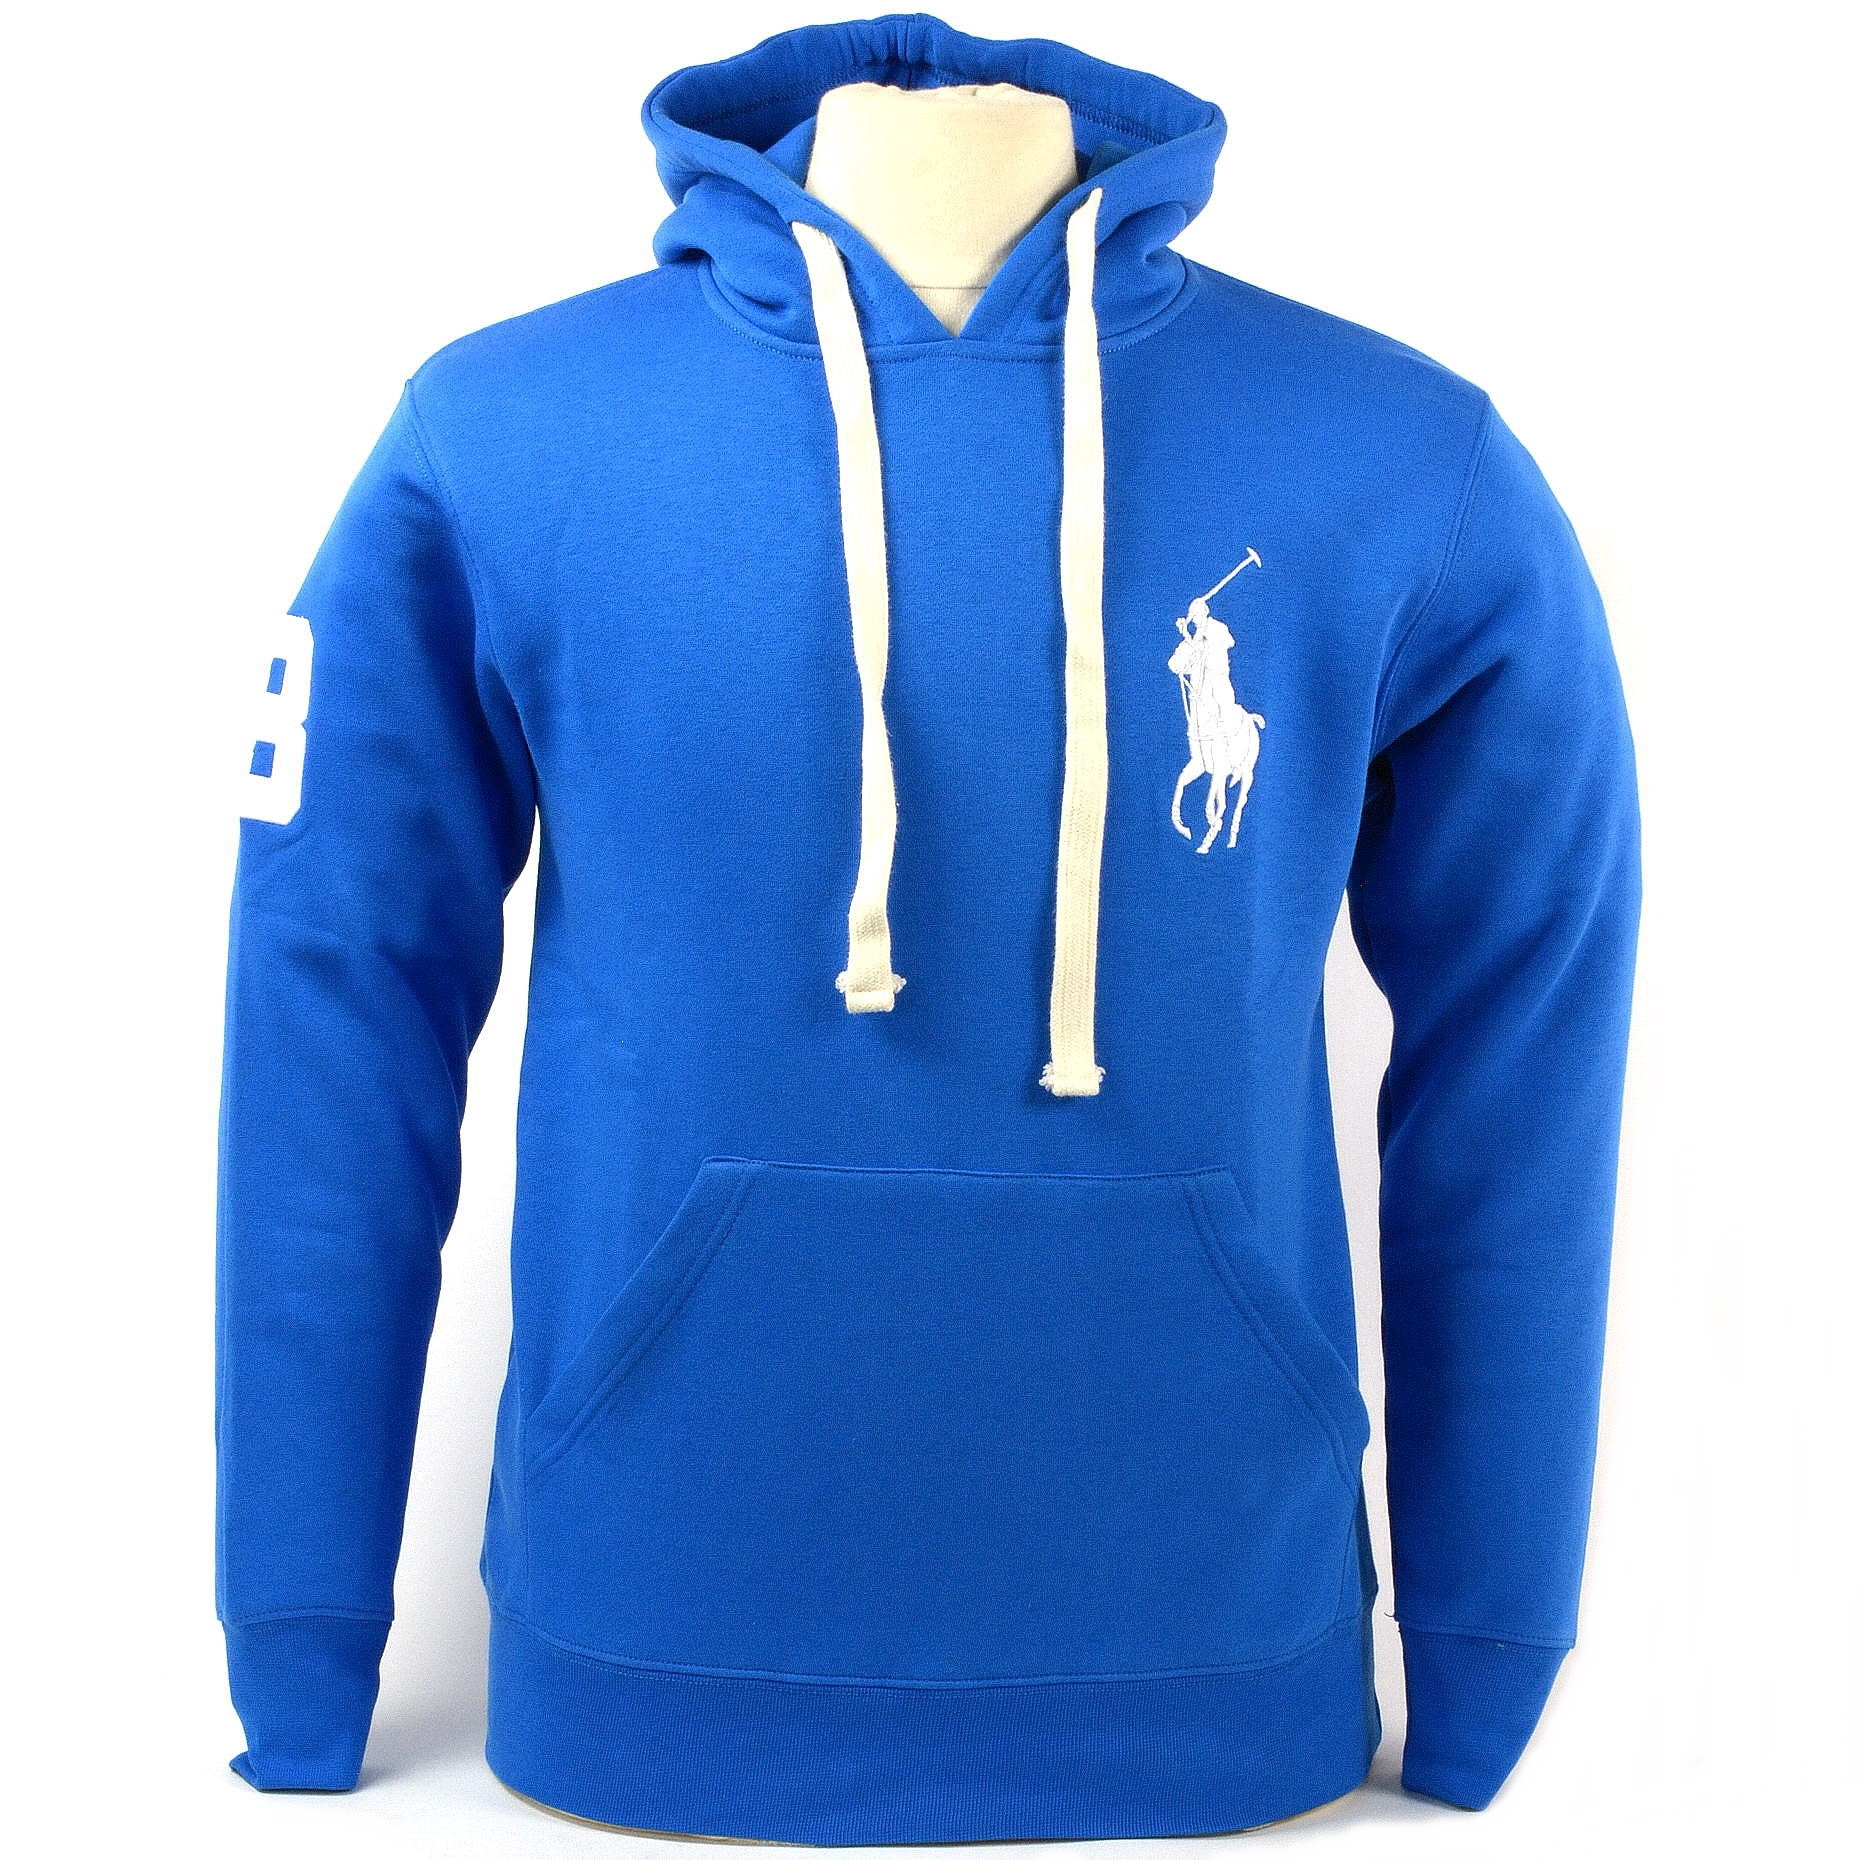 Mens polo hoodies